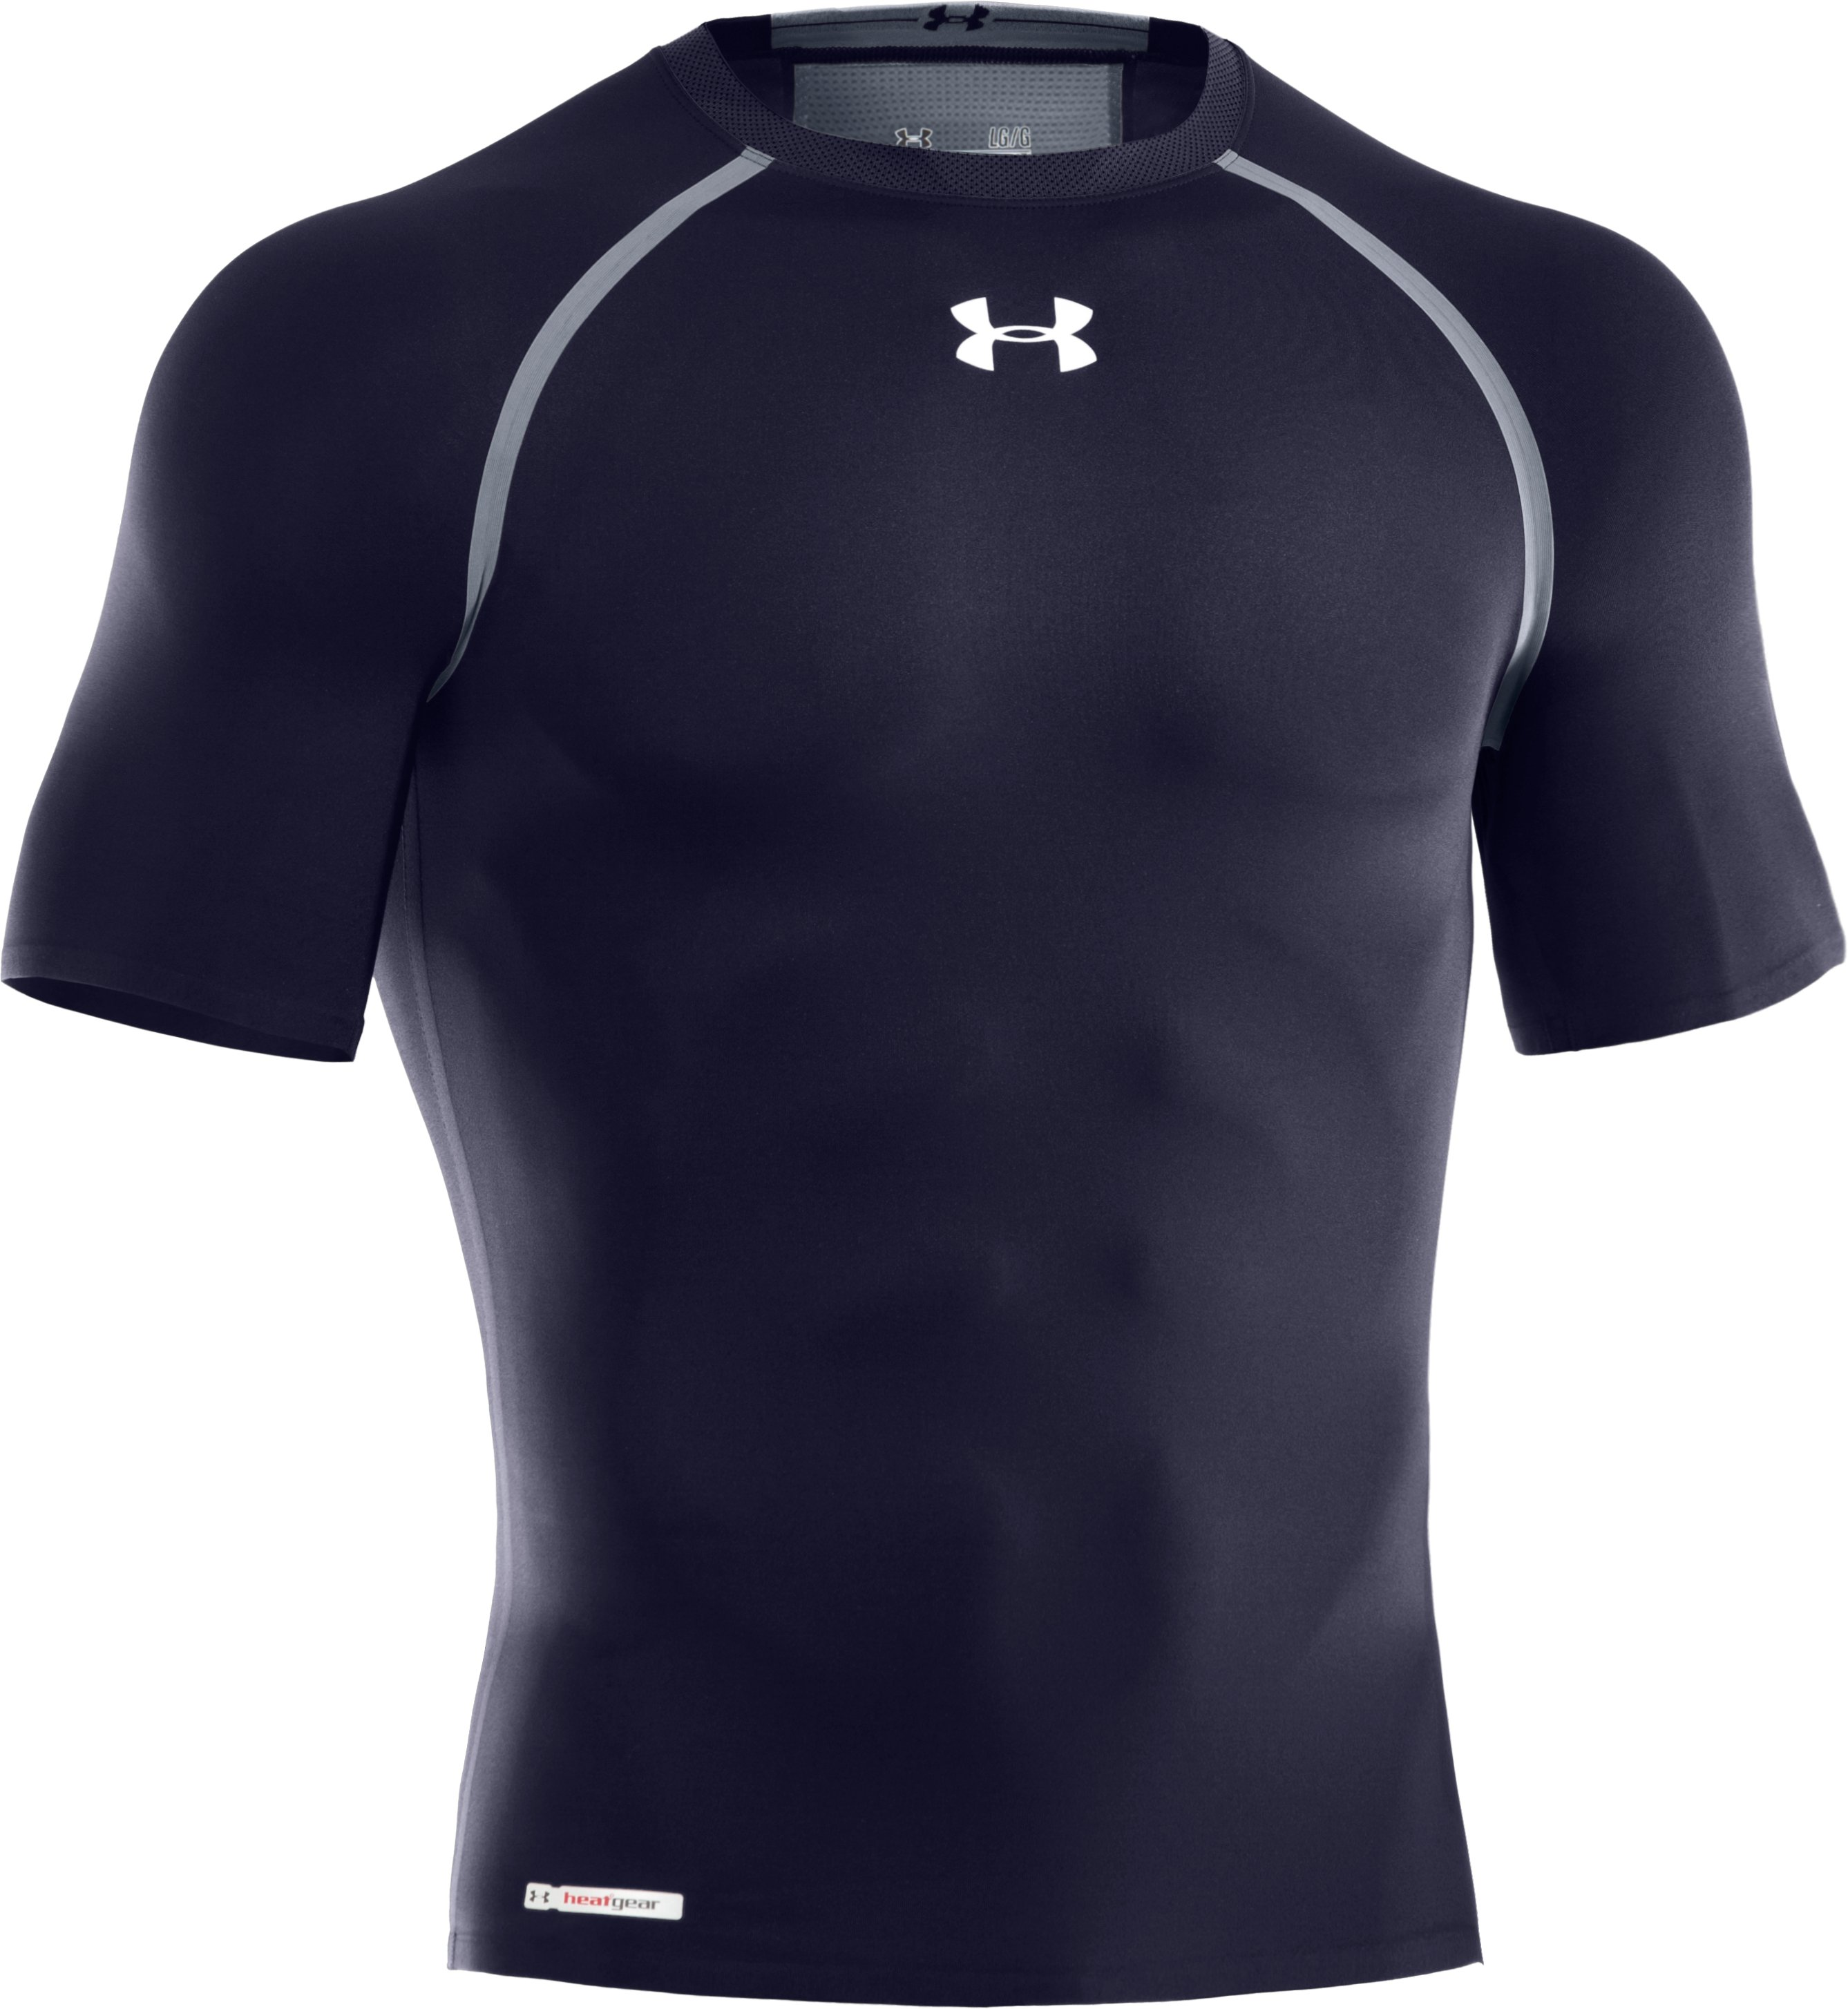 Men's HeatGear® Dynasty Vented Compression Short Sleeve, Midnight Navy